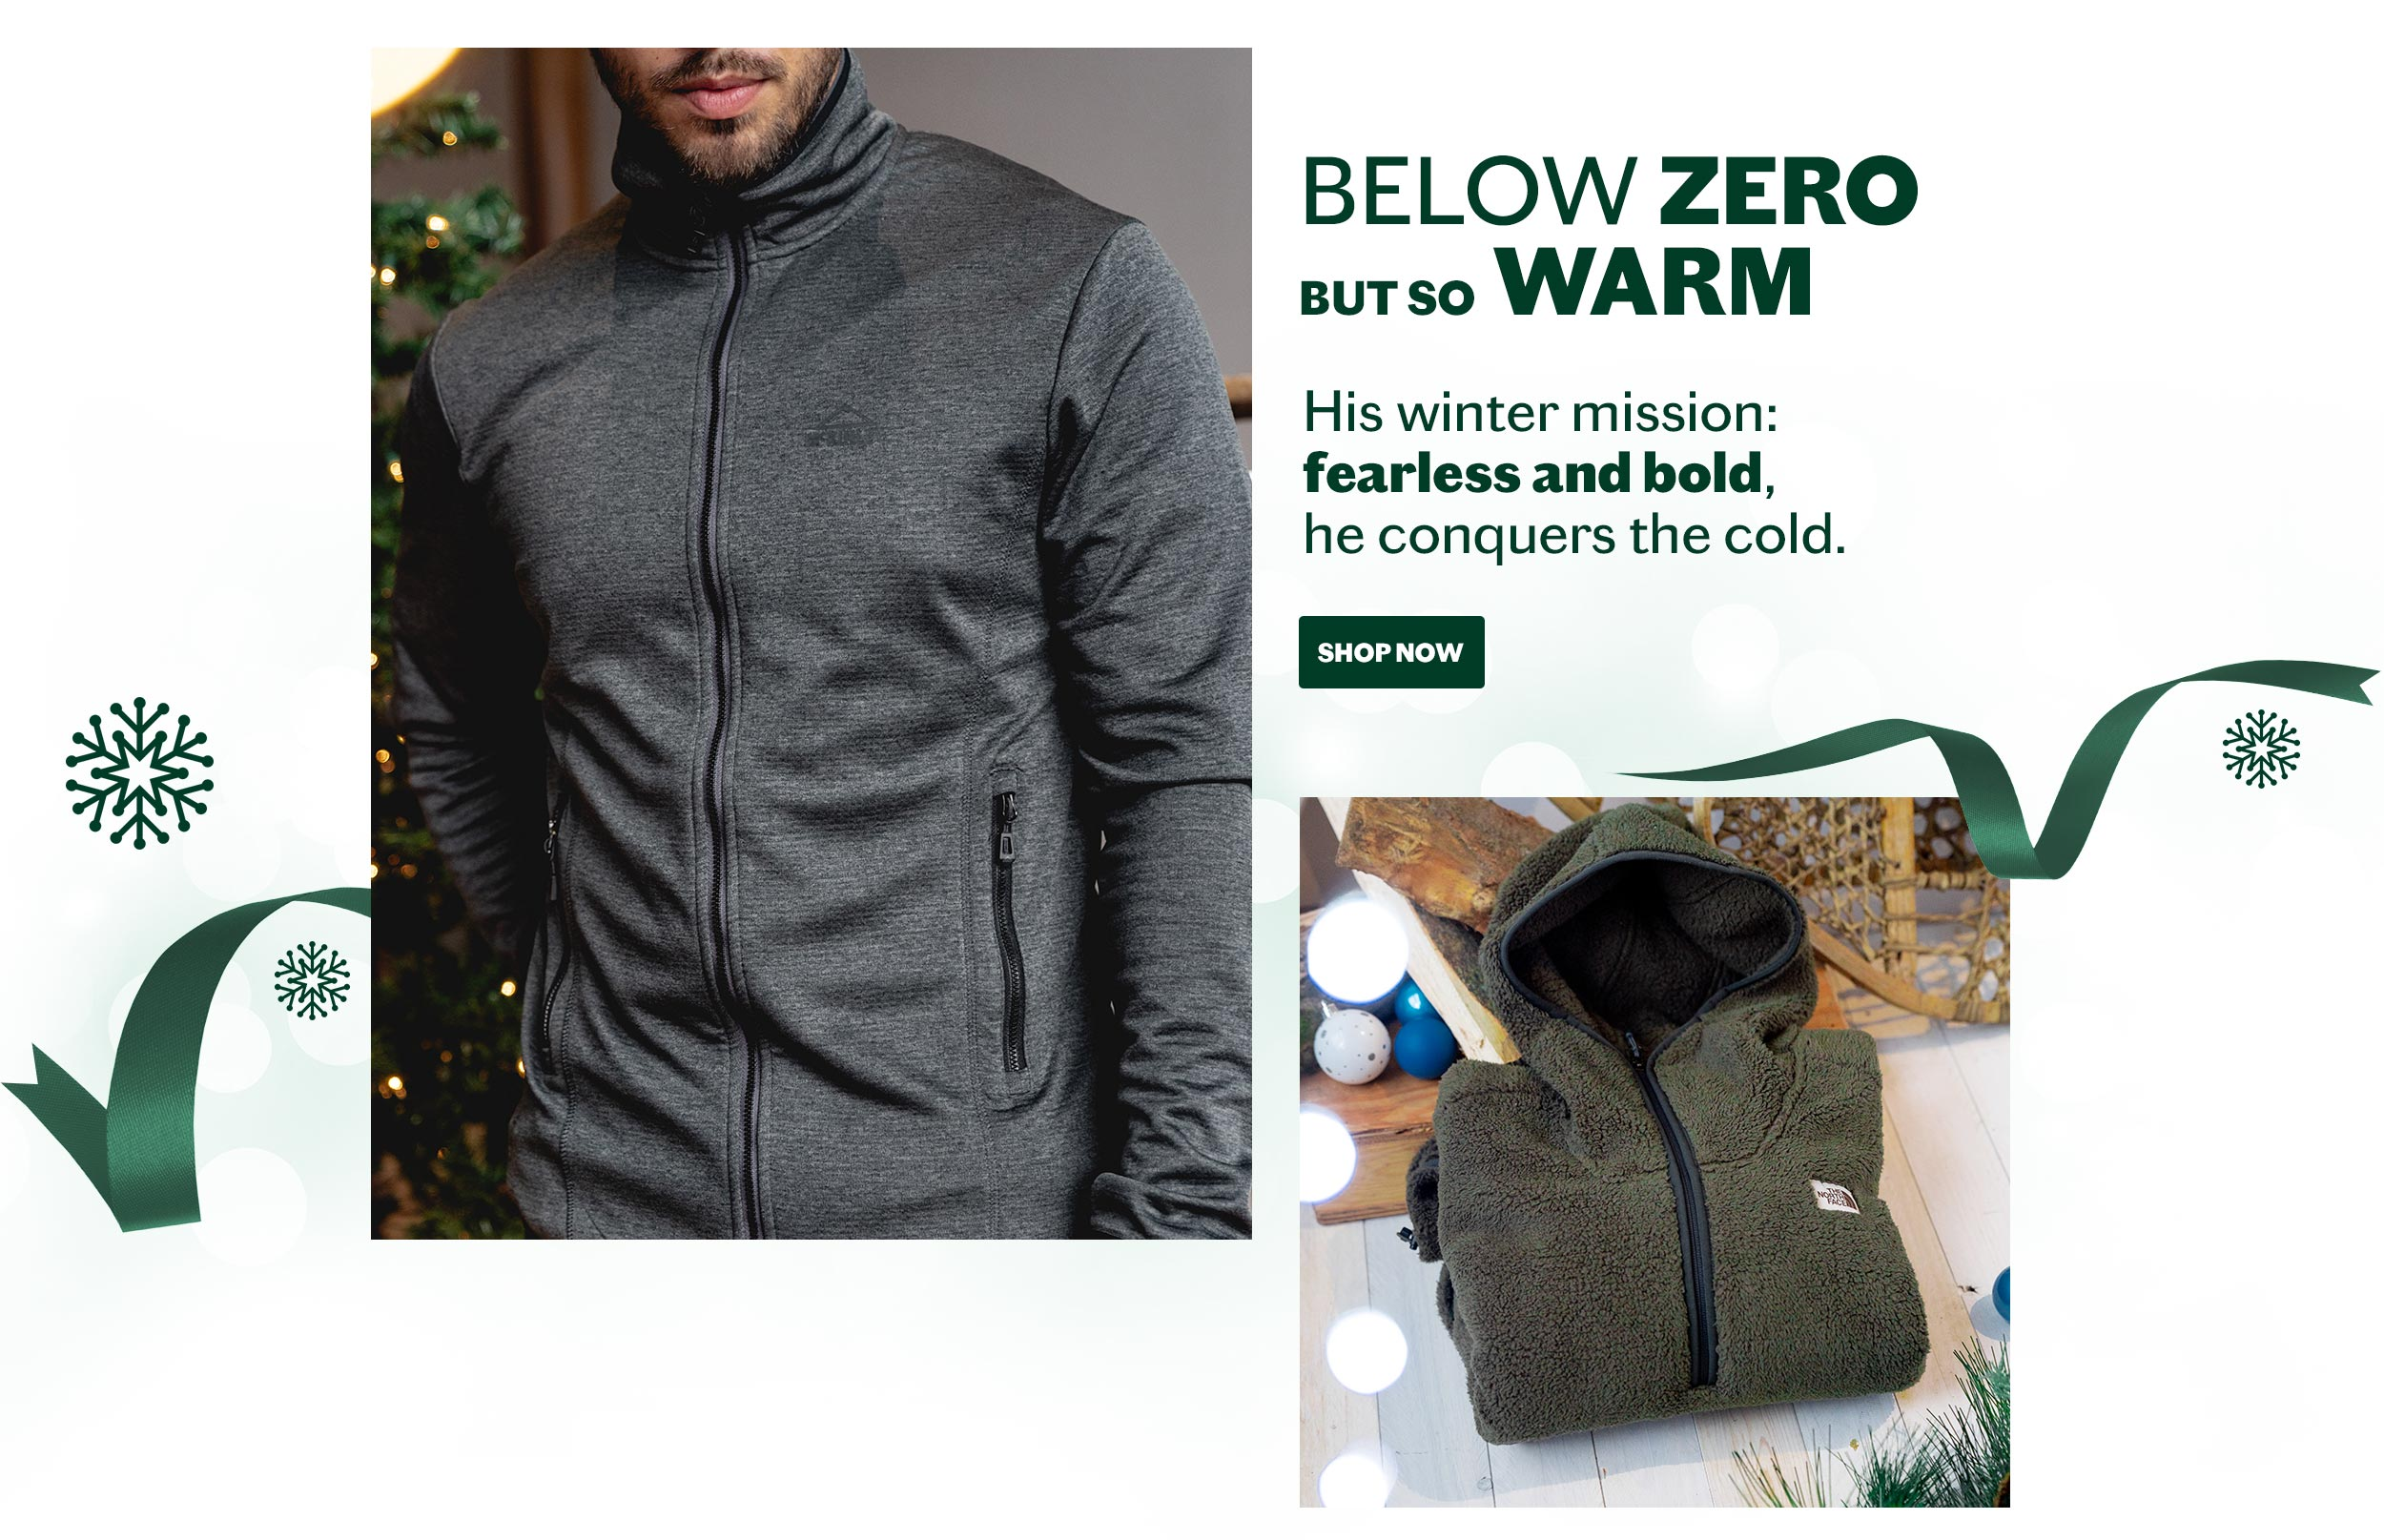 Below zero but so warm shop now